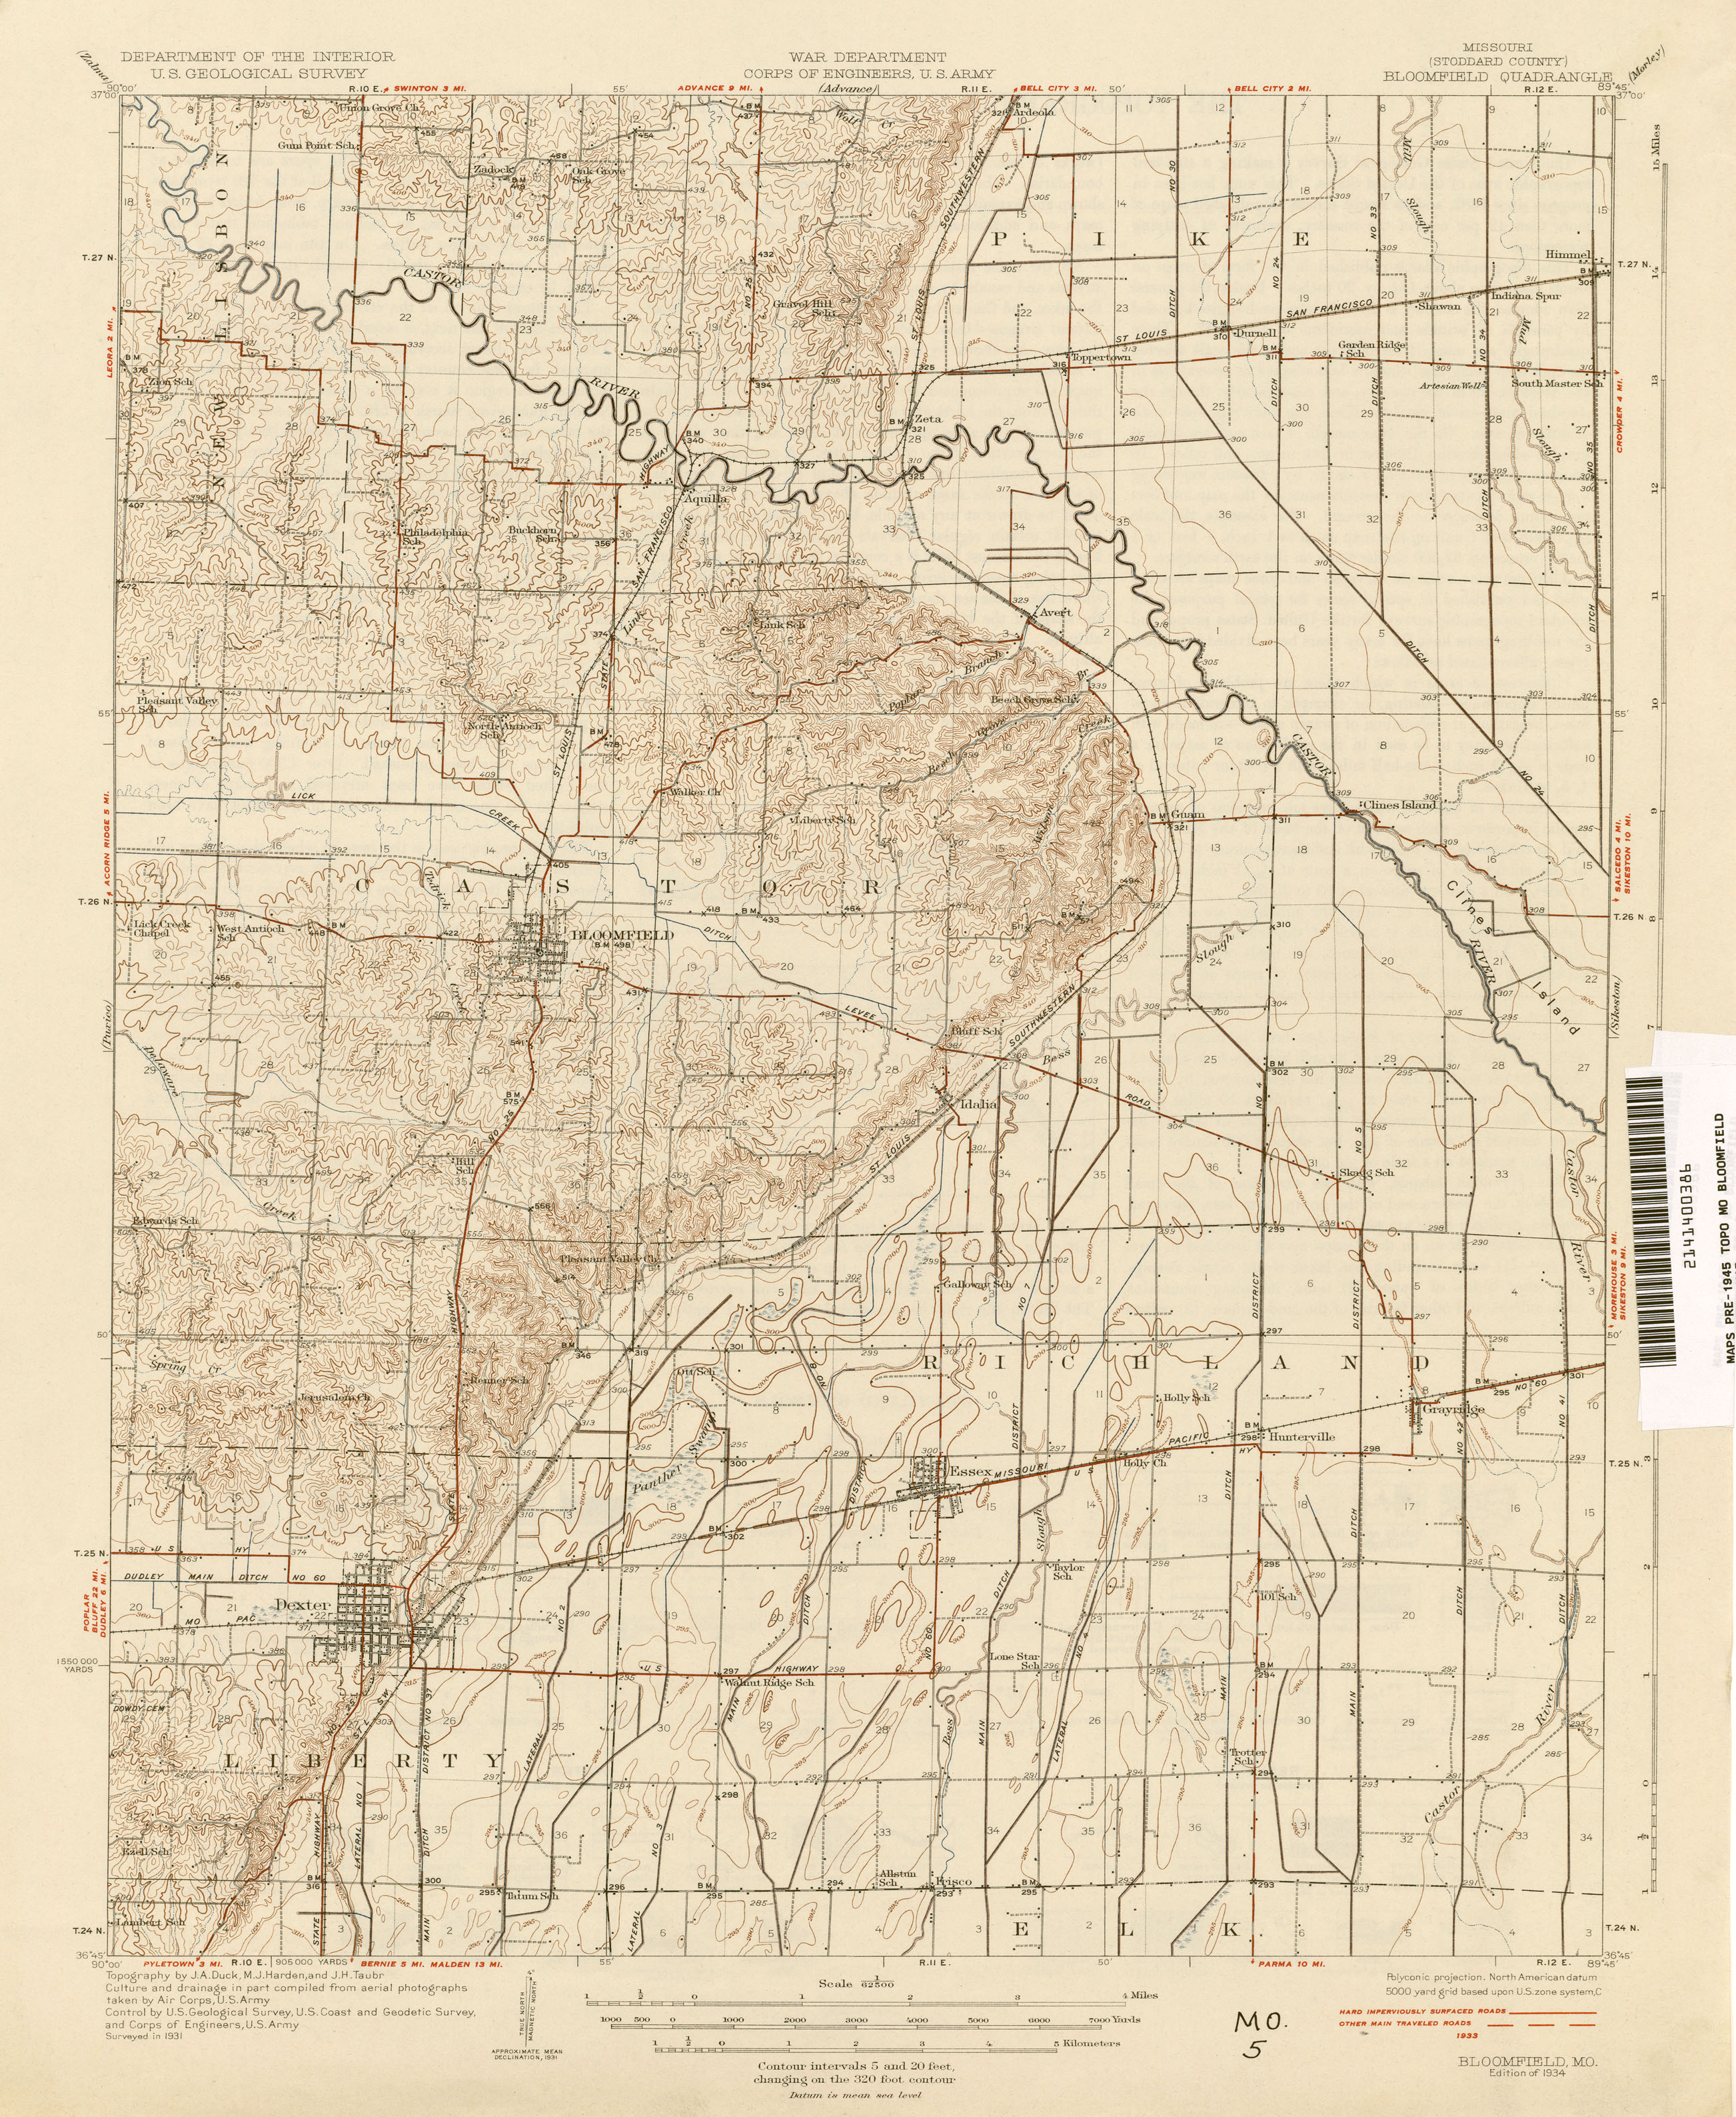 Missouri Historical Topographic Maps - Perry-Castañeda Map ... on map of northwest missouri, map of missouri towns, map of el dorado springs missouri, map of crystal lakes missouri, map of trimble missouri, map of palmer missouri, map of saint joseph missouri, map of mehlville missouri, map of houston missouri, map of franklin county missouri, map of fair grove missouri, map of brookfield missouri, map of de soto missouri, map of hamilton missouri, map of moscow mills missouri, map of union missouri, map of house springs missouri, map of athens missouri, map of bunker missouri, map of hayti missouri,